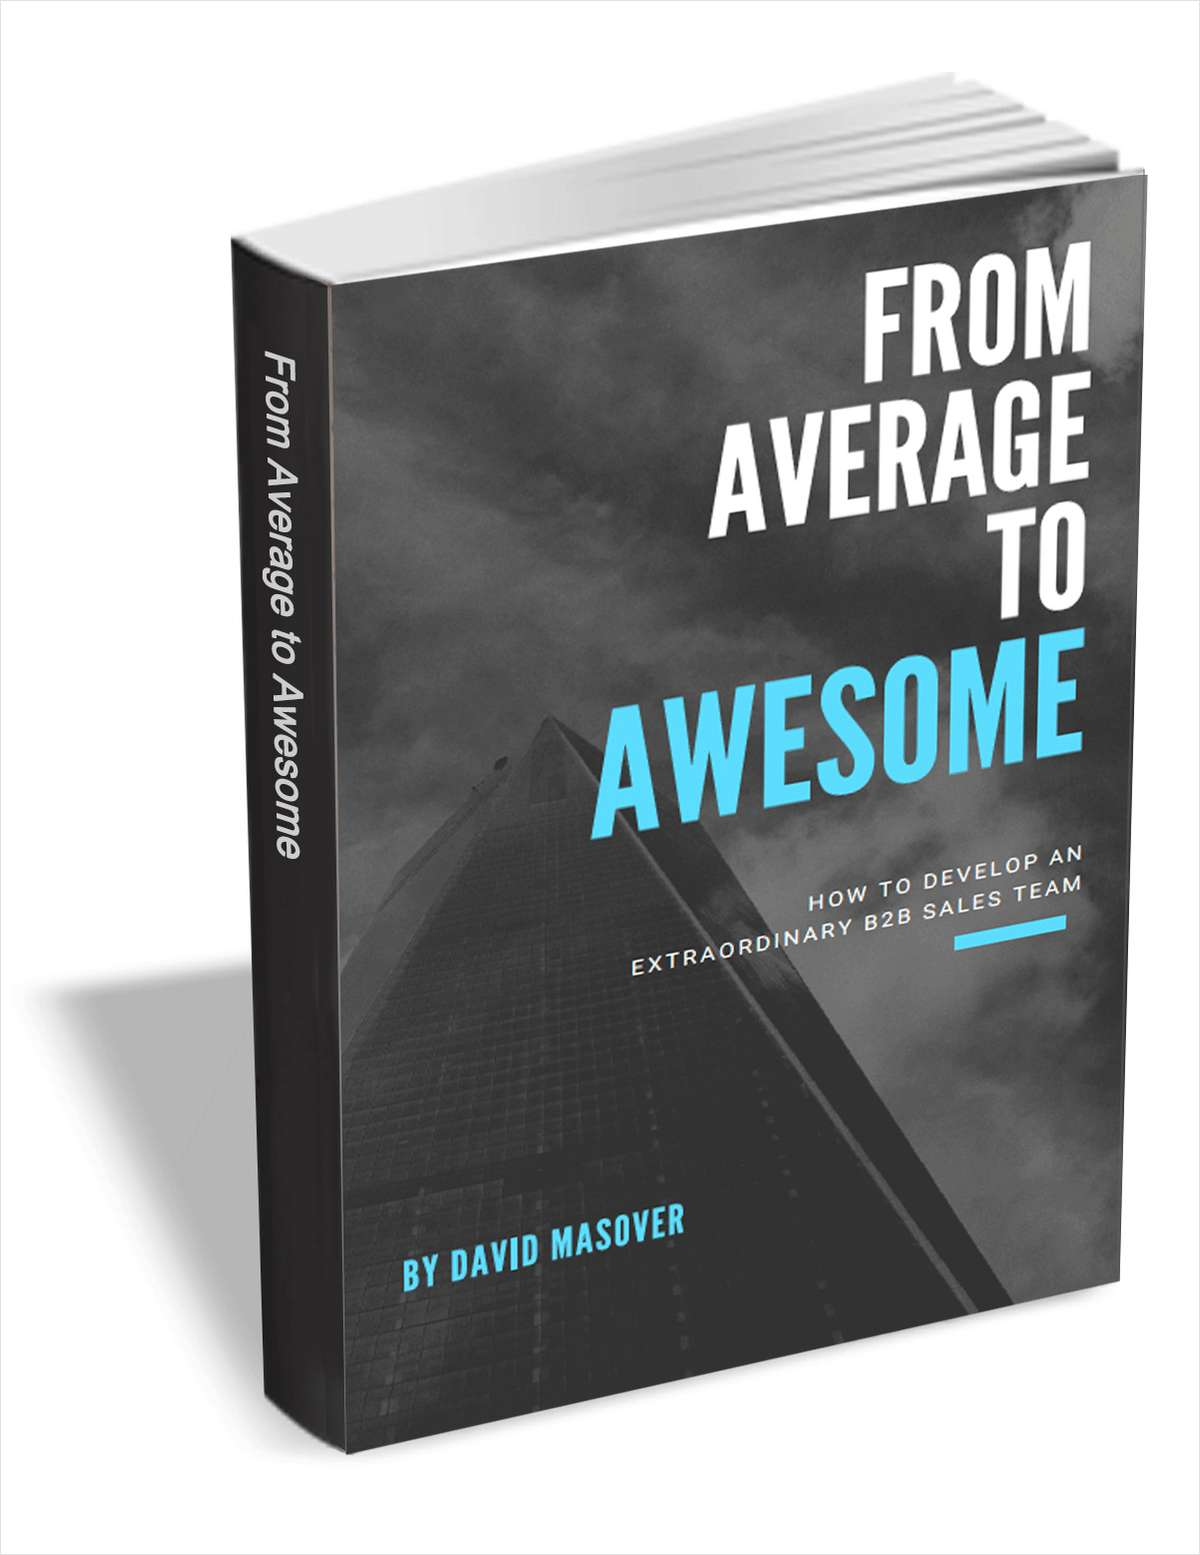 From Average to Awesome - How to Develop an Extraordinary B2B Sales Team